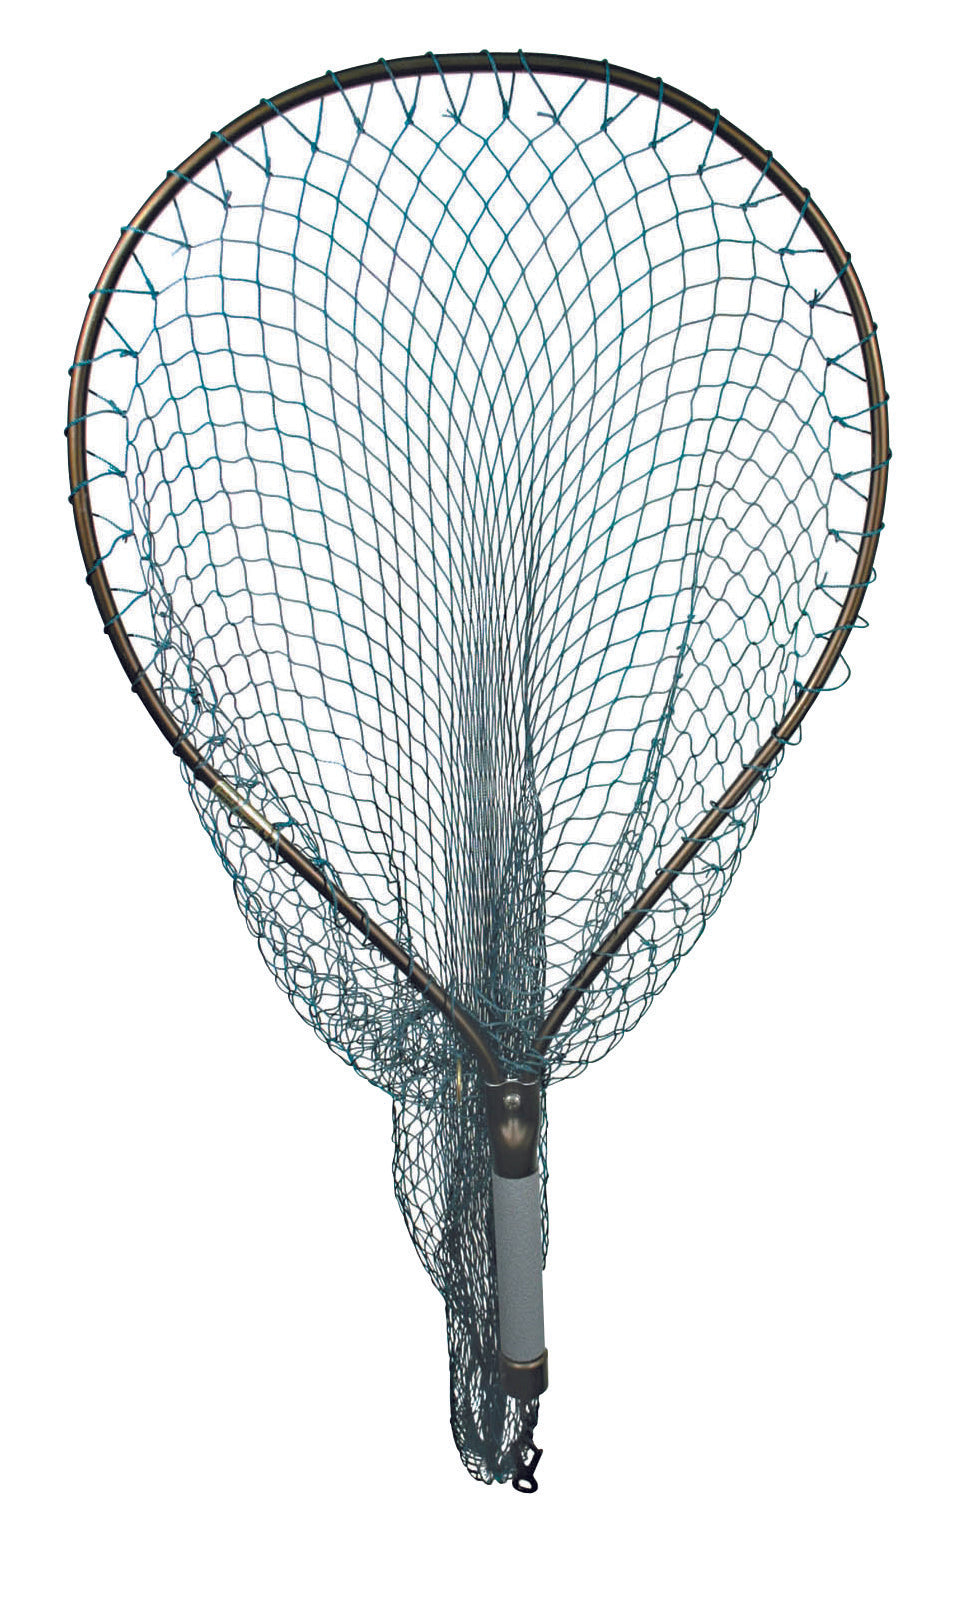 Old style Short Handle 30lb Weigh (L) knotless mesh